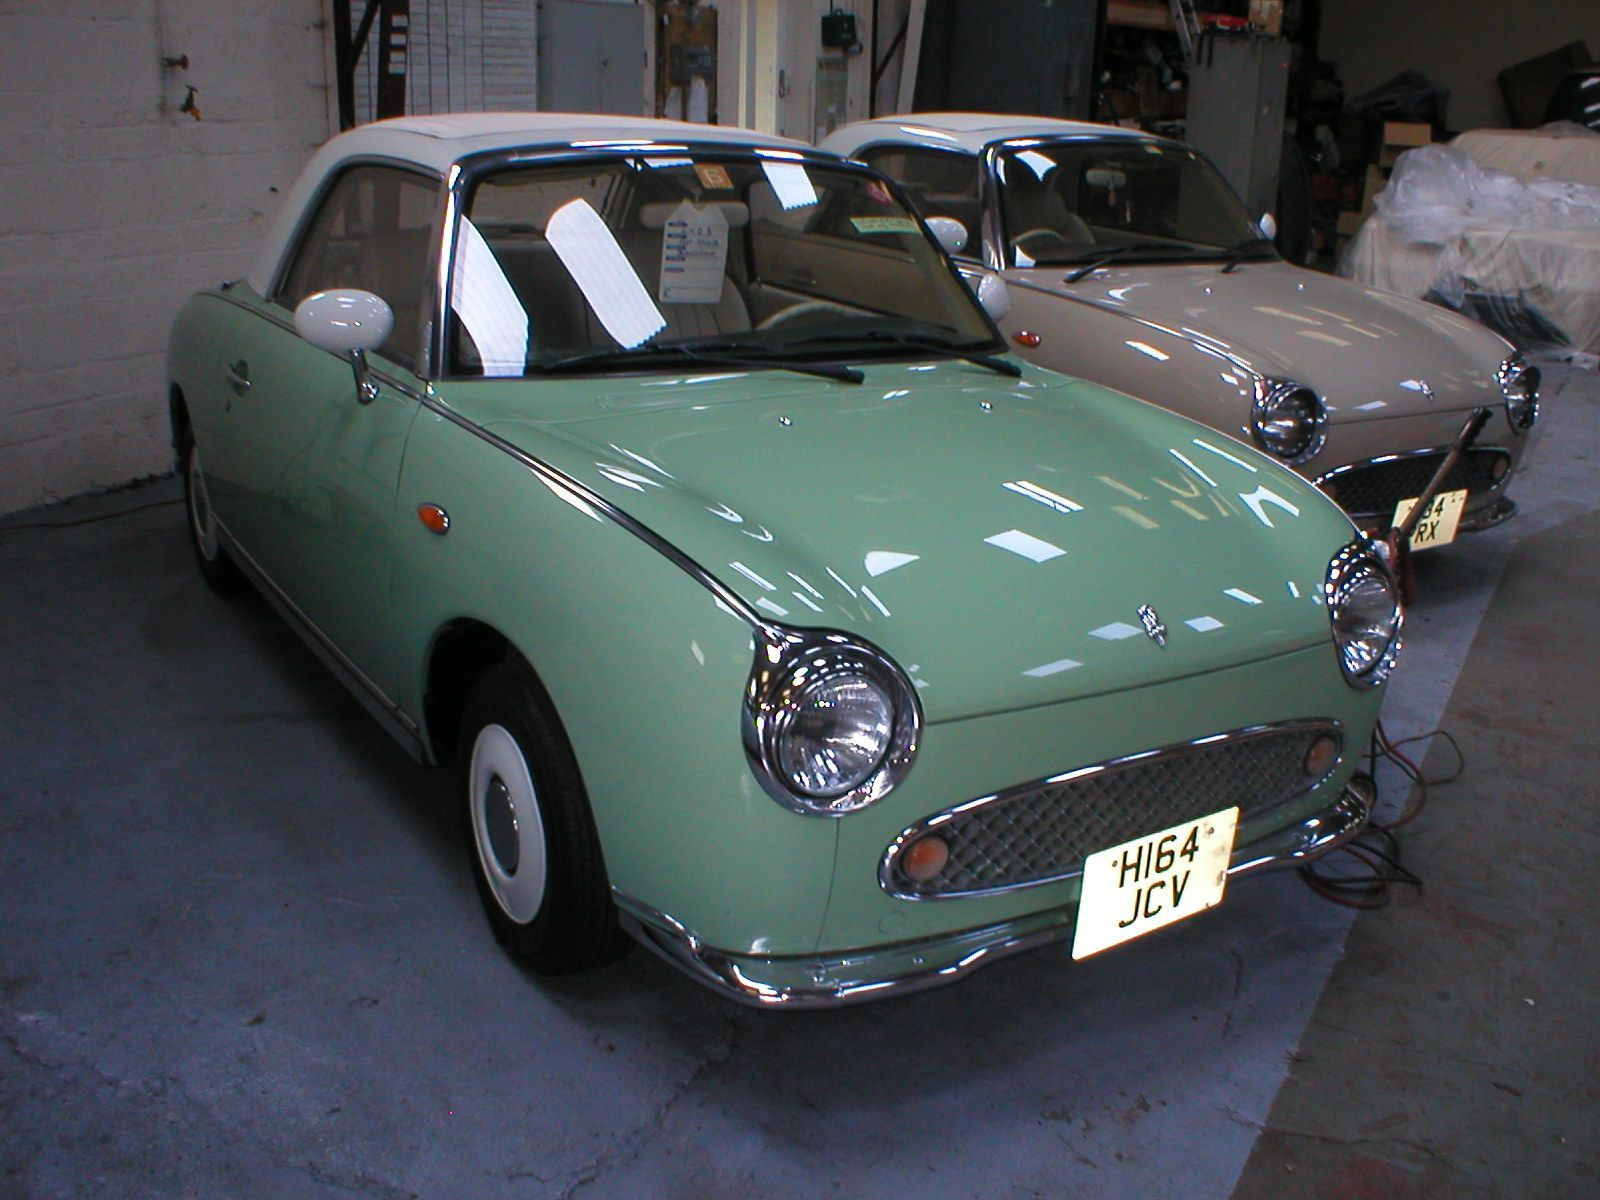 Immaculate Green Nissan Figaro in Left Hand Drive at the